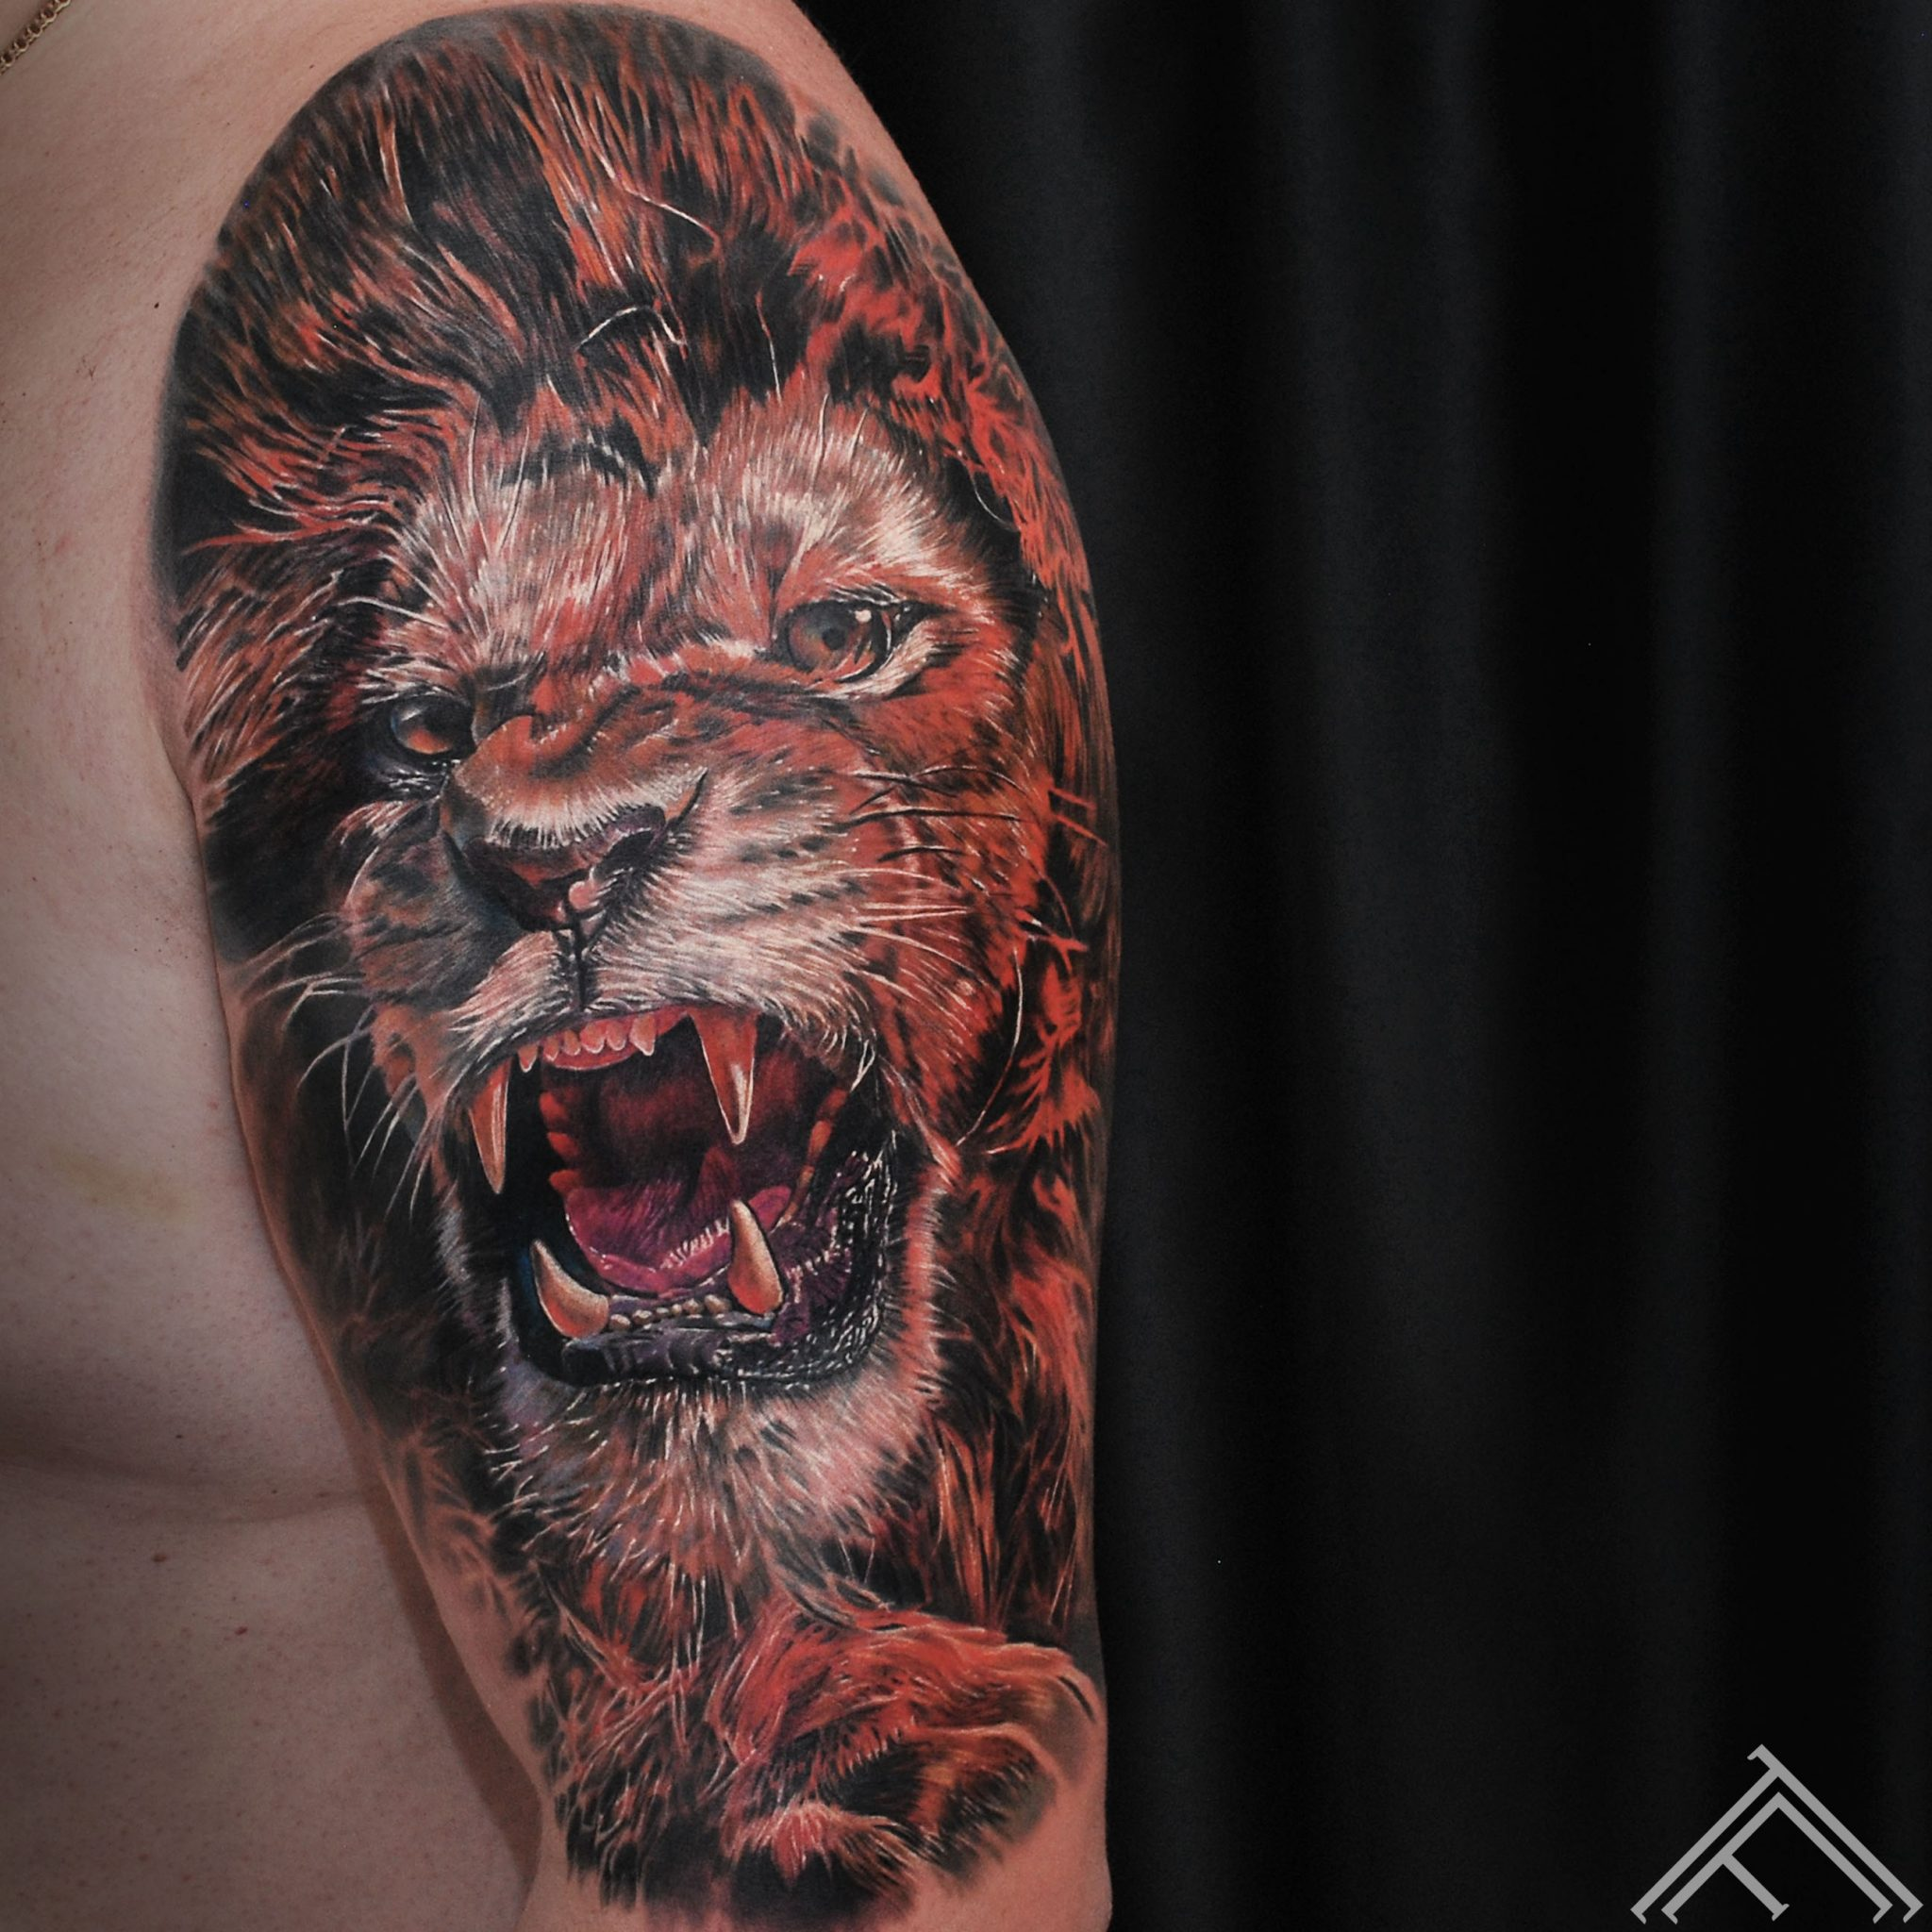 lion-lauva-tattoo-tetovejums-riga-tattoofrequency-art-marispavlo